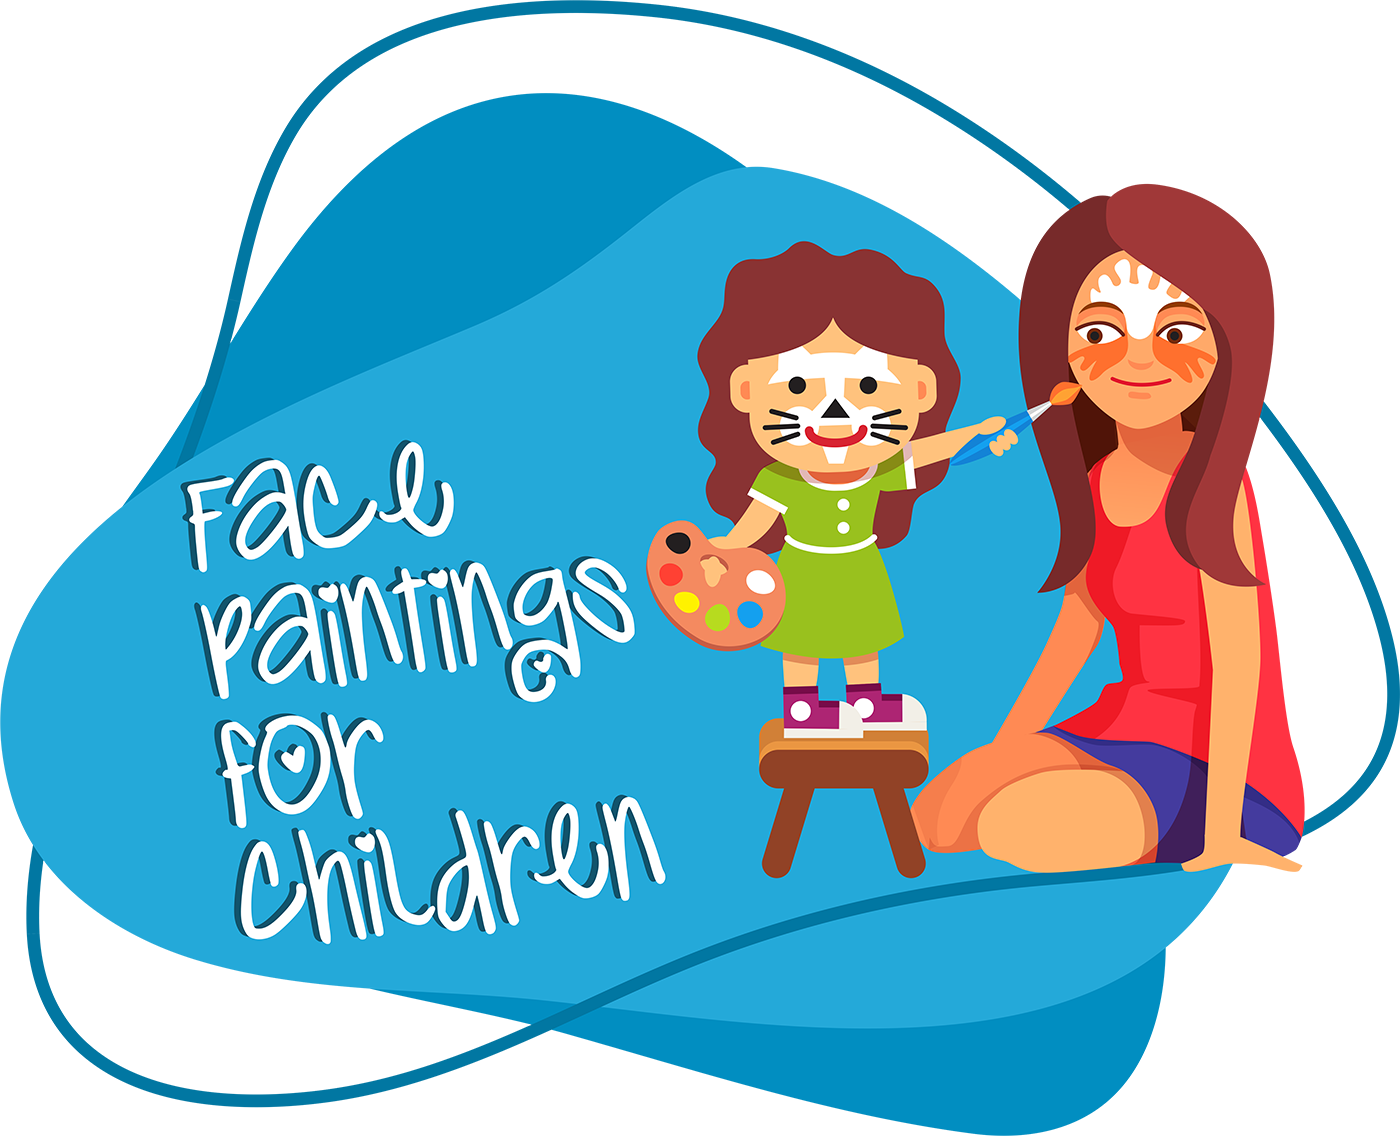 Face Paintings for Children